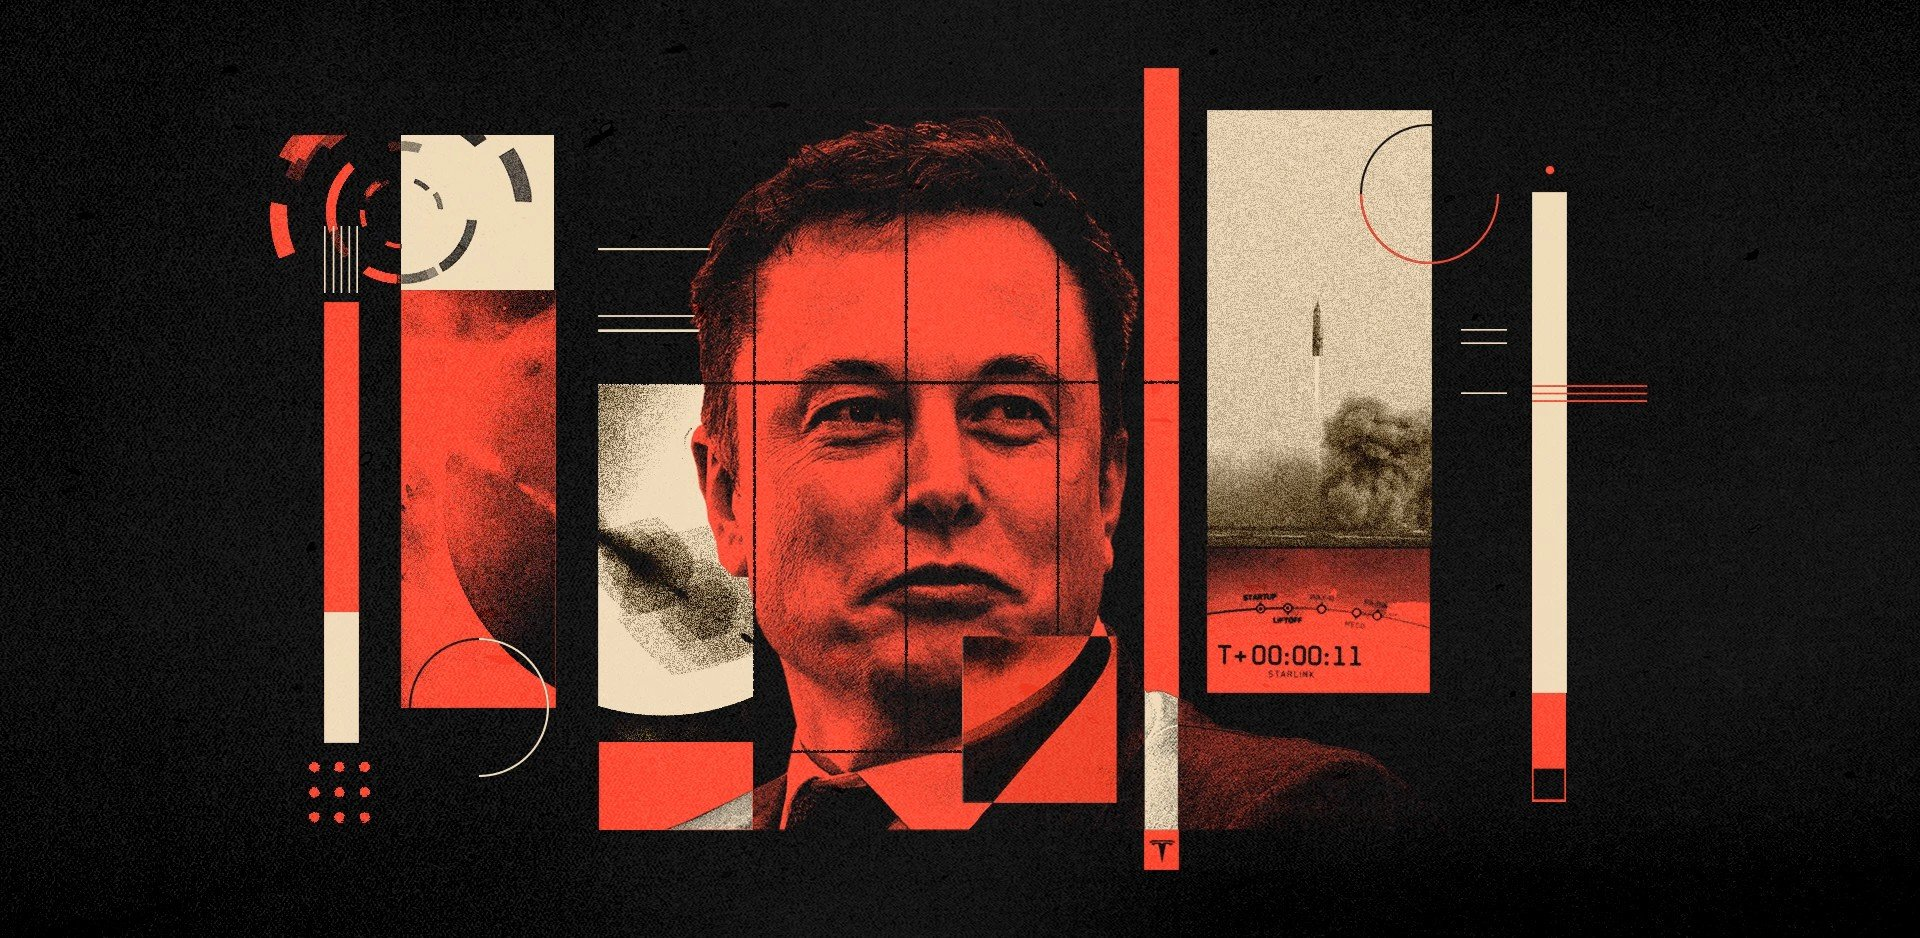 Elon Musk Is Maybe, Actually, Strangely, Going to Do This Mars Thing